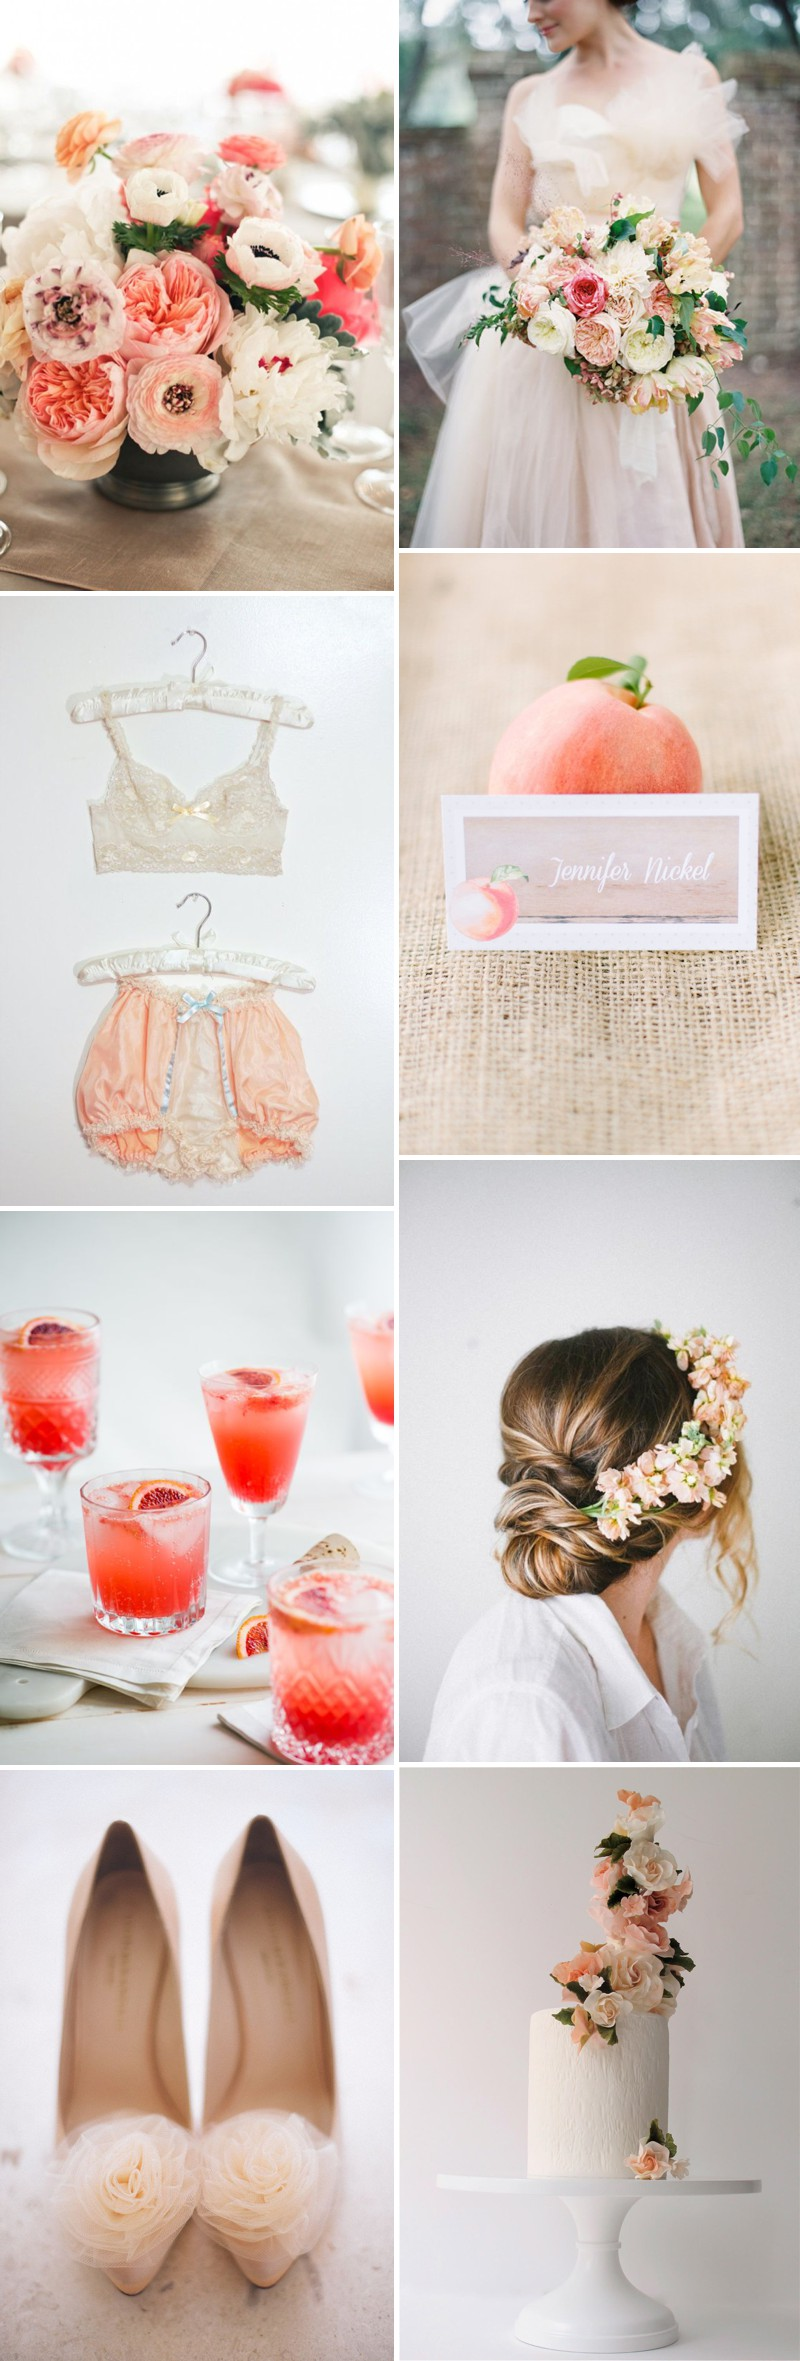 How To Create A Peach Colour Themed Wedding Using Flowers, Bridesmaids, Cakes And Decor._0001